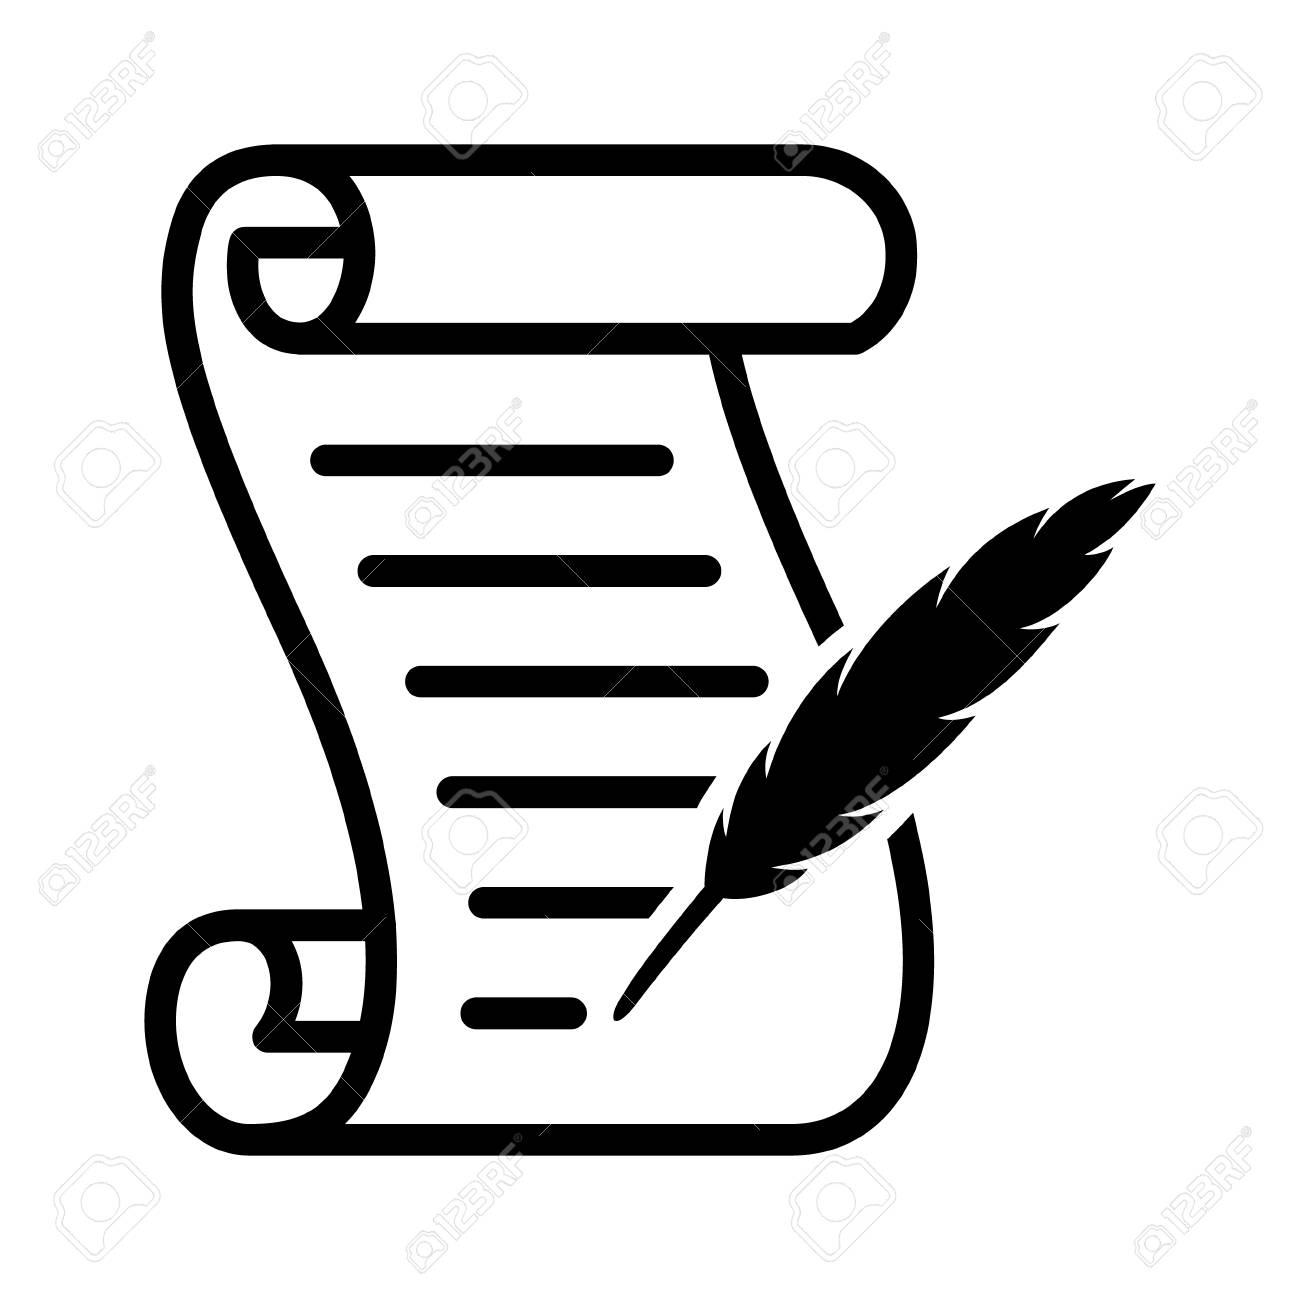 Writing on a scroll with a feather quill pen line art vector icon for games and websites - 82069369